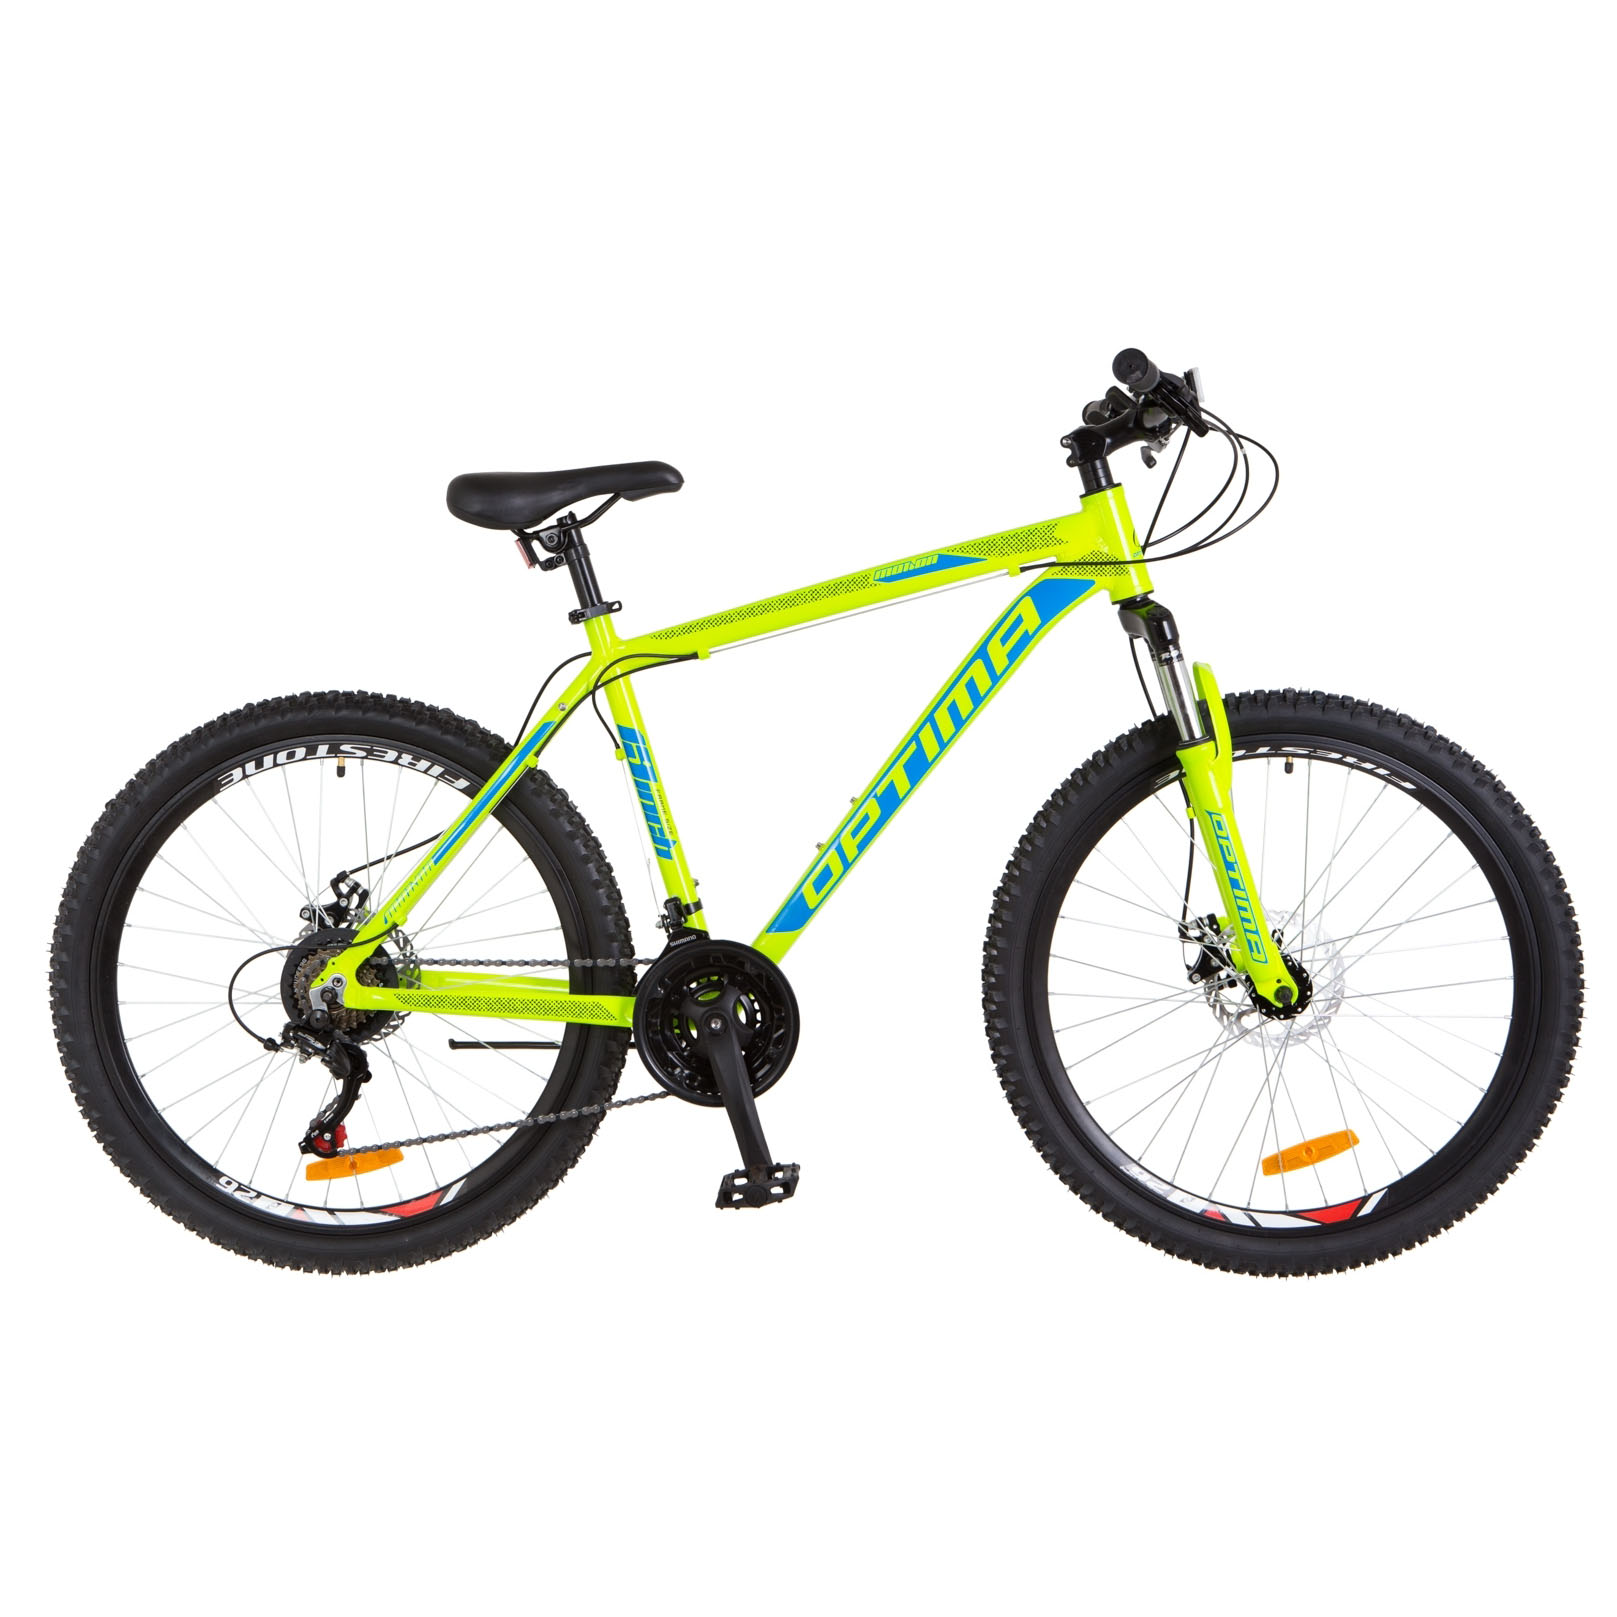 Фото Горный Велосипед 26 Optimabikes MOTION DD салатно-синий